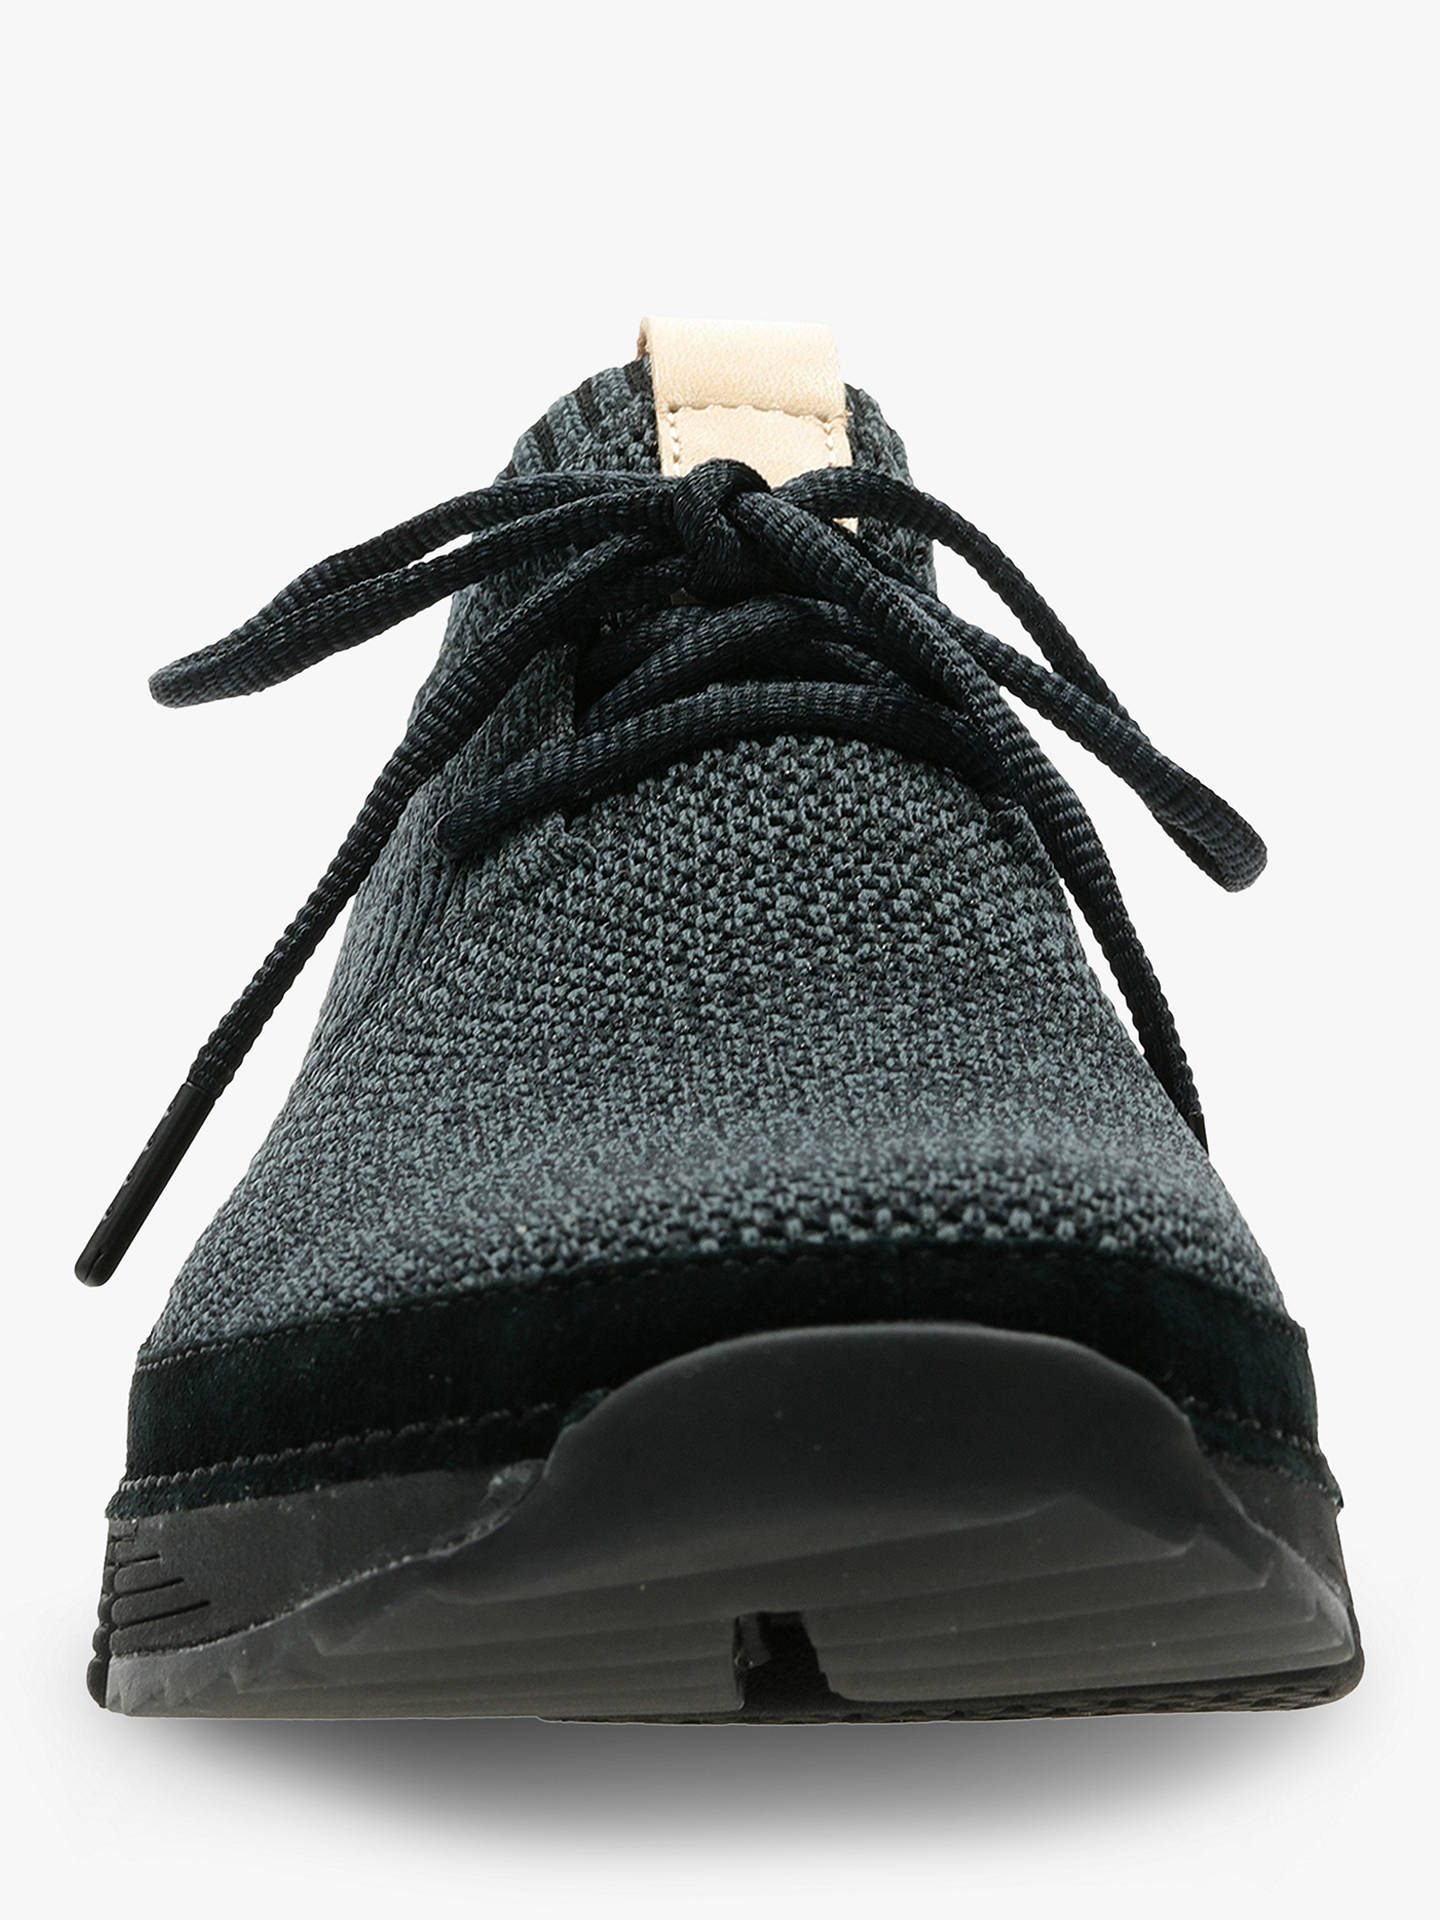 Clarks Tri Native Trainers, Black at John Lewis & Partners